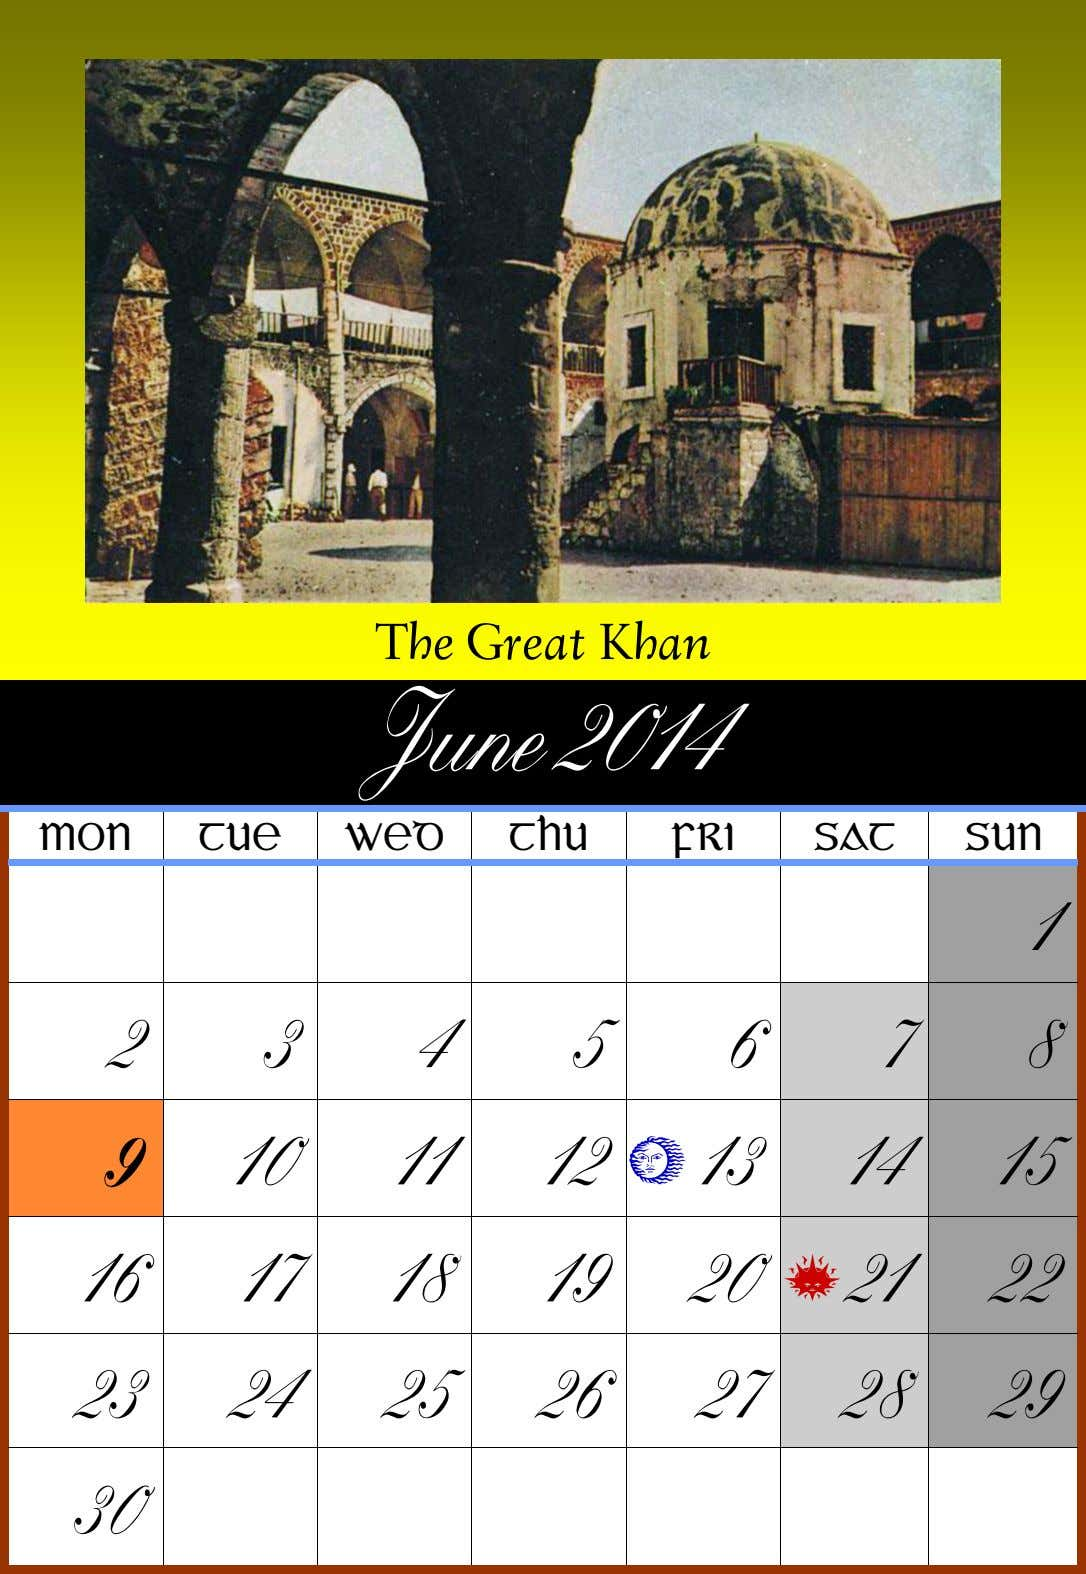 The Great Khan June 2014 MON TUE WED THU FRI SAT SUN 1 2 3